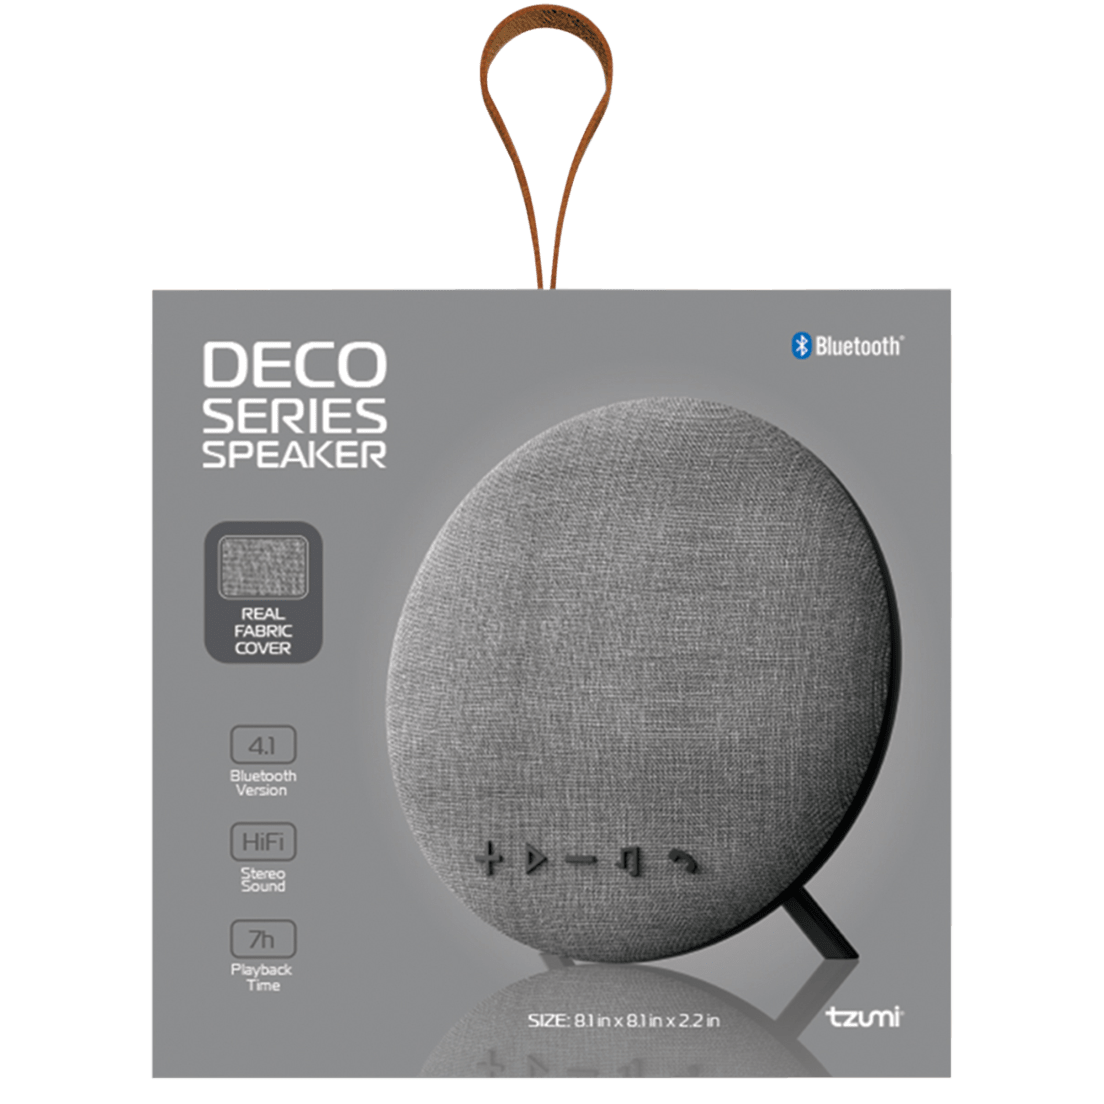 Portable Audio & Headphones Audio Docks & Mini Speakers Large Wireless Bluetooth Fabric Speaker Sporting Deco Series Speaker By Tzumi